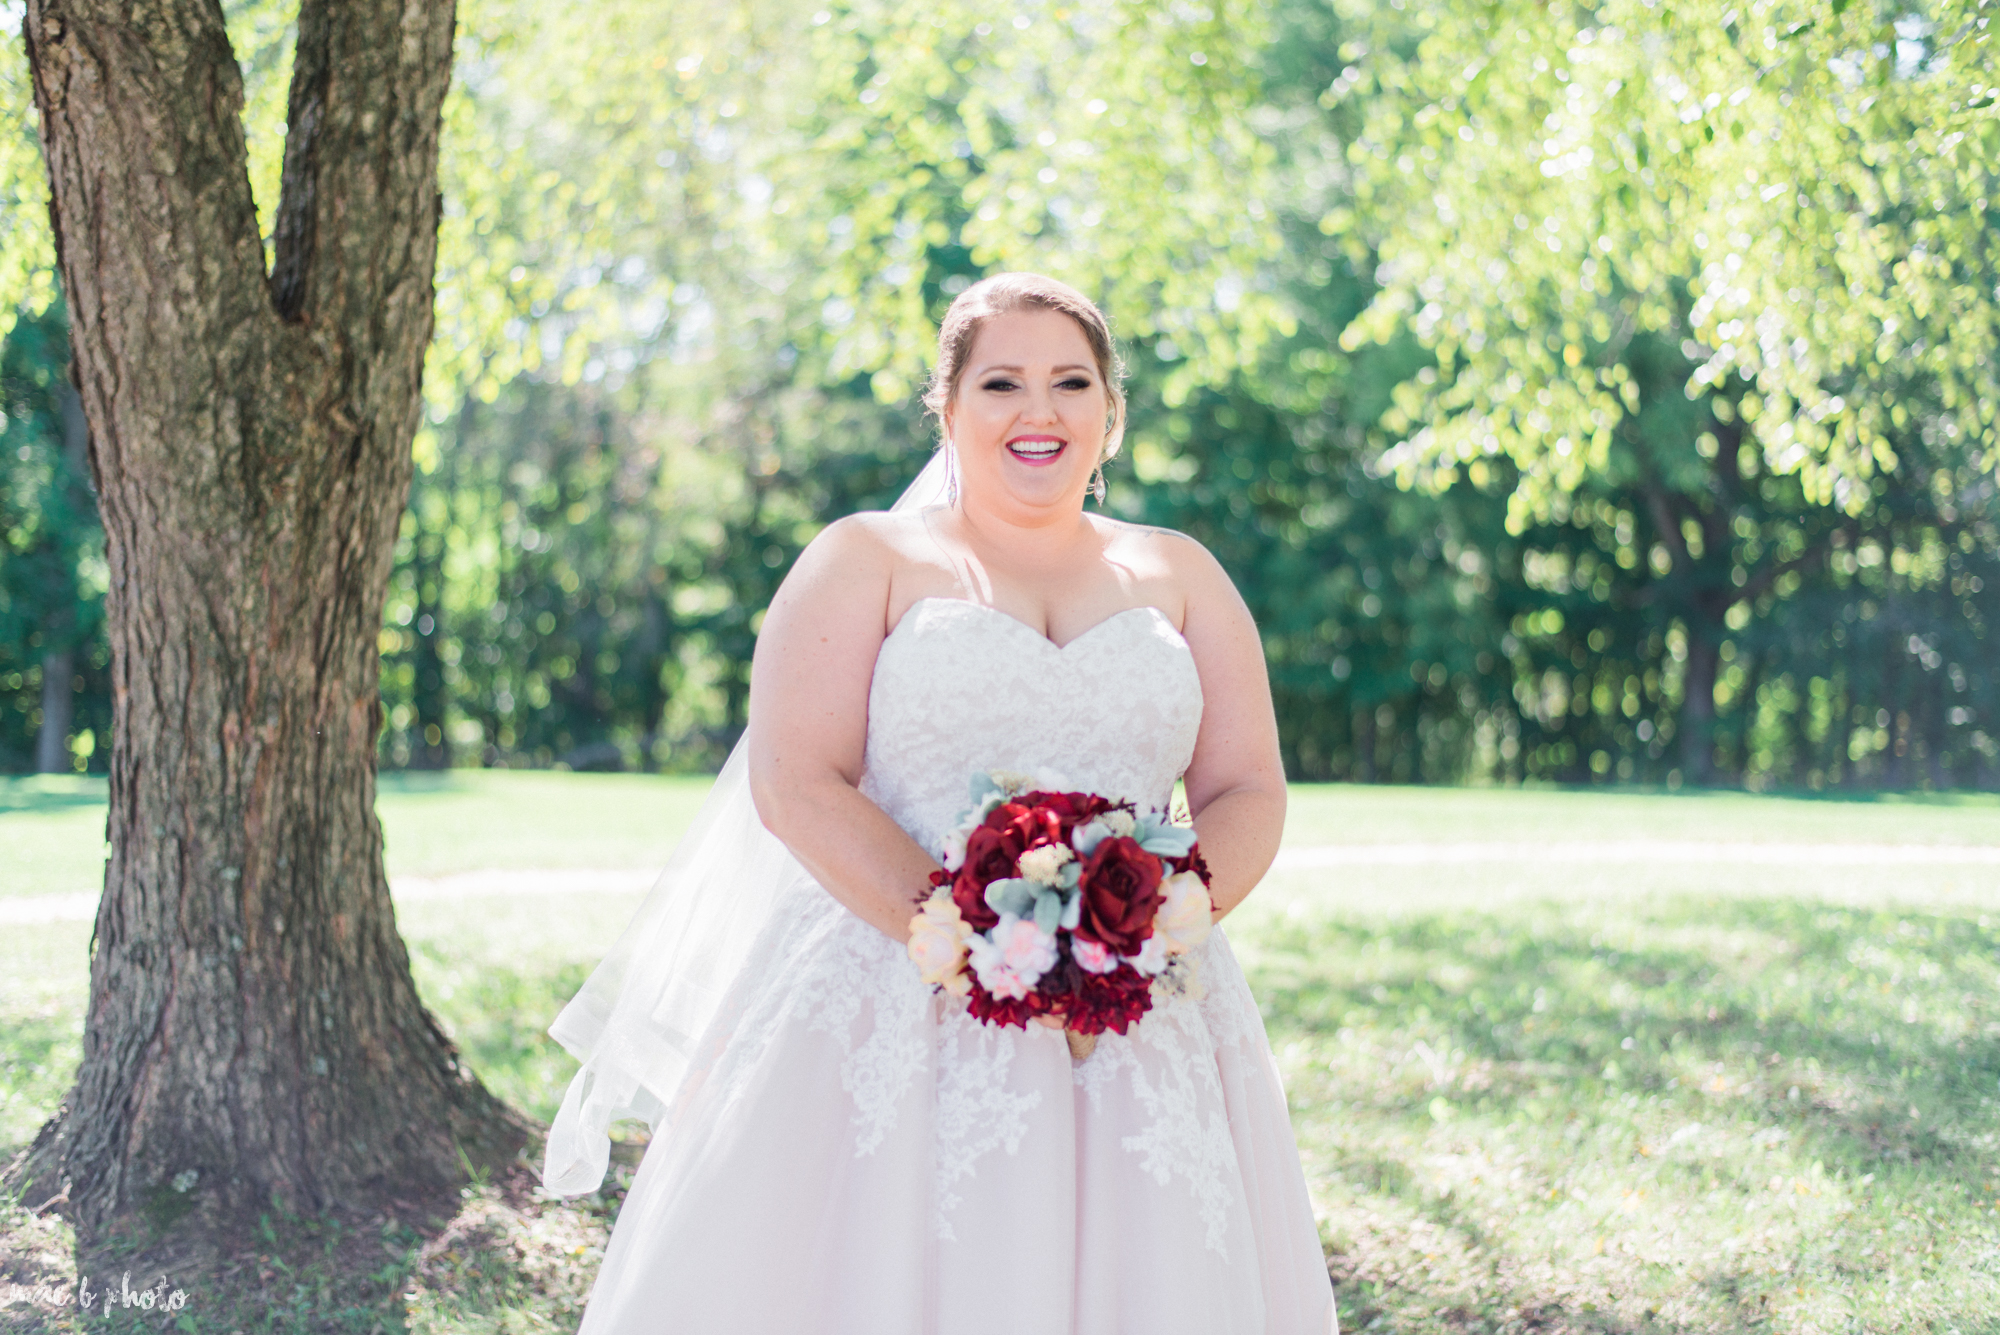 Amber & Kyle's Rustic Barn Wedding at SNPJ in Enon Valley, PA by Mae B Photo-61.jpg